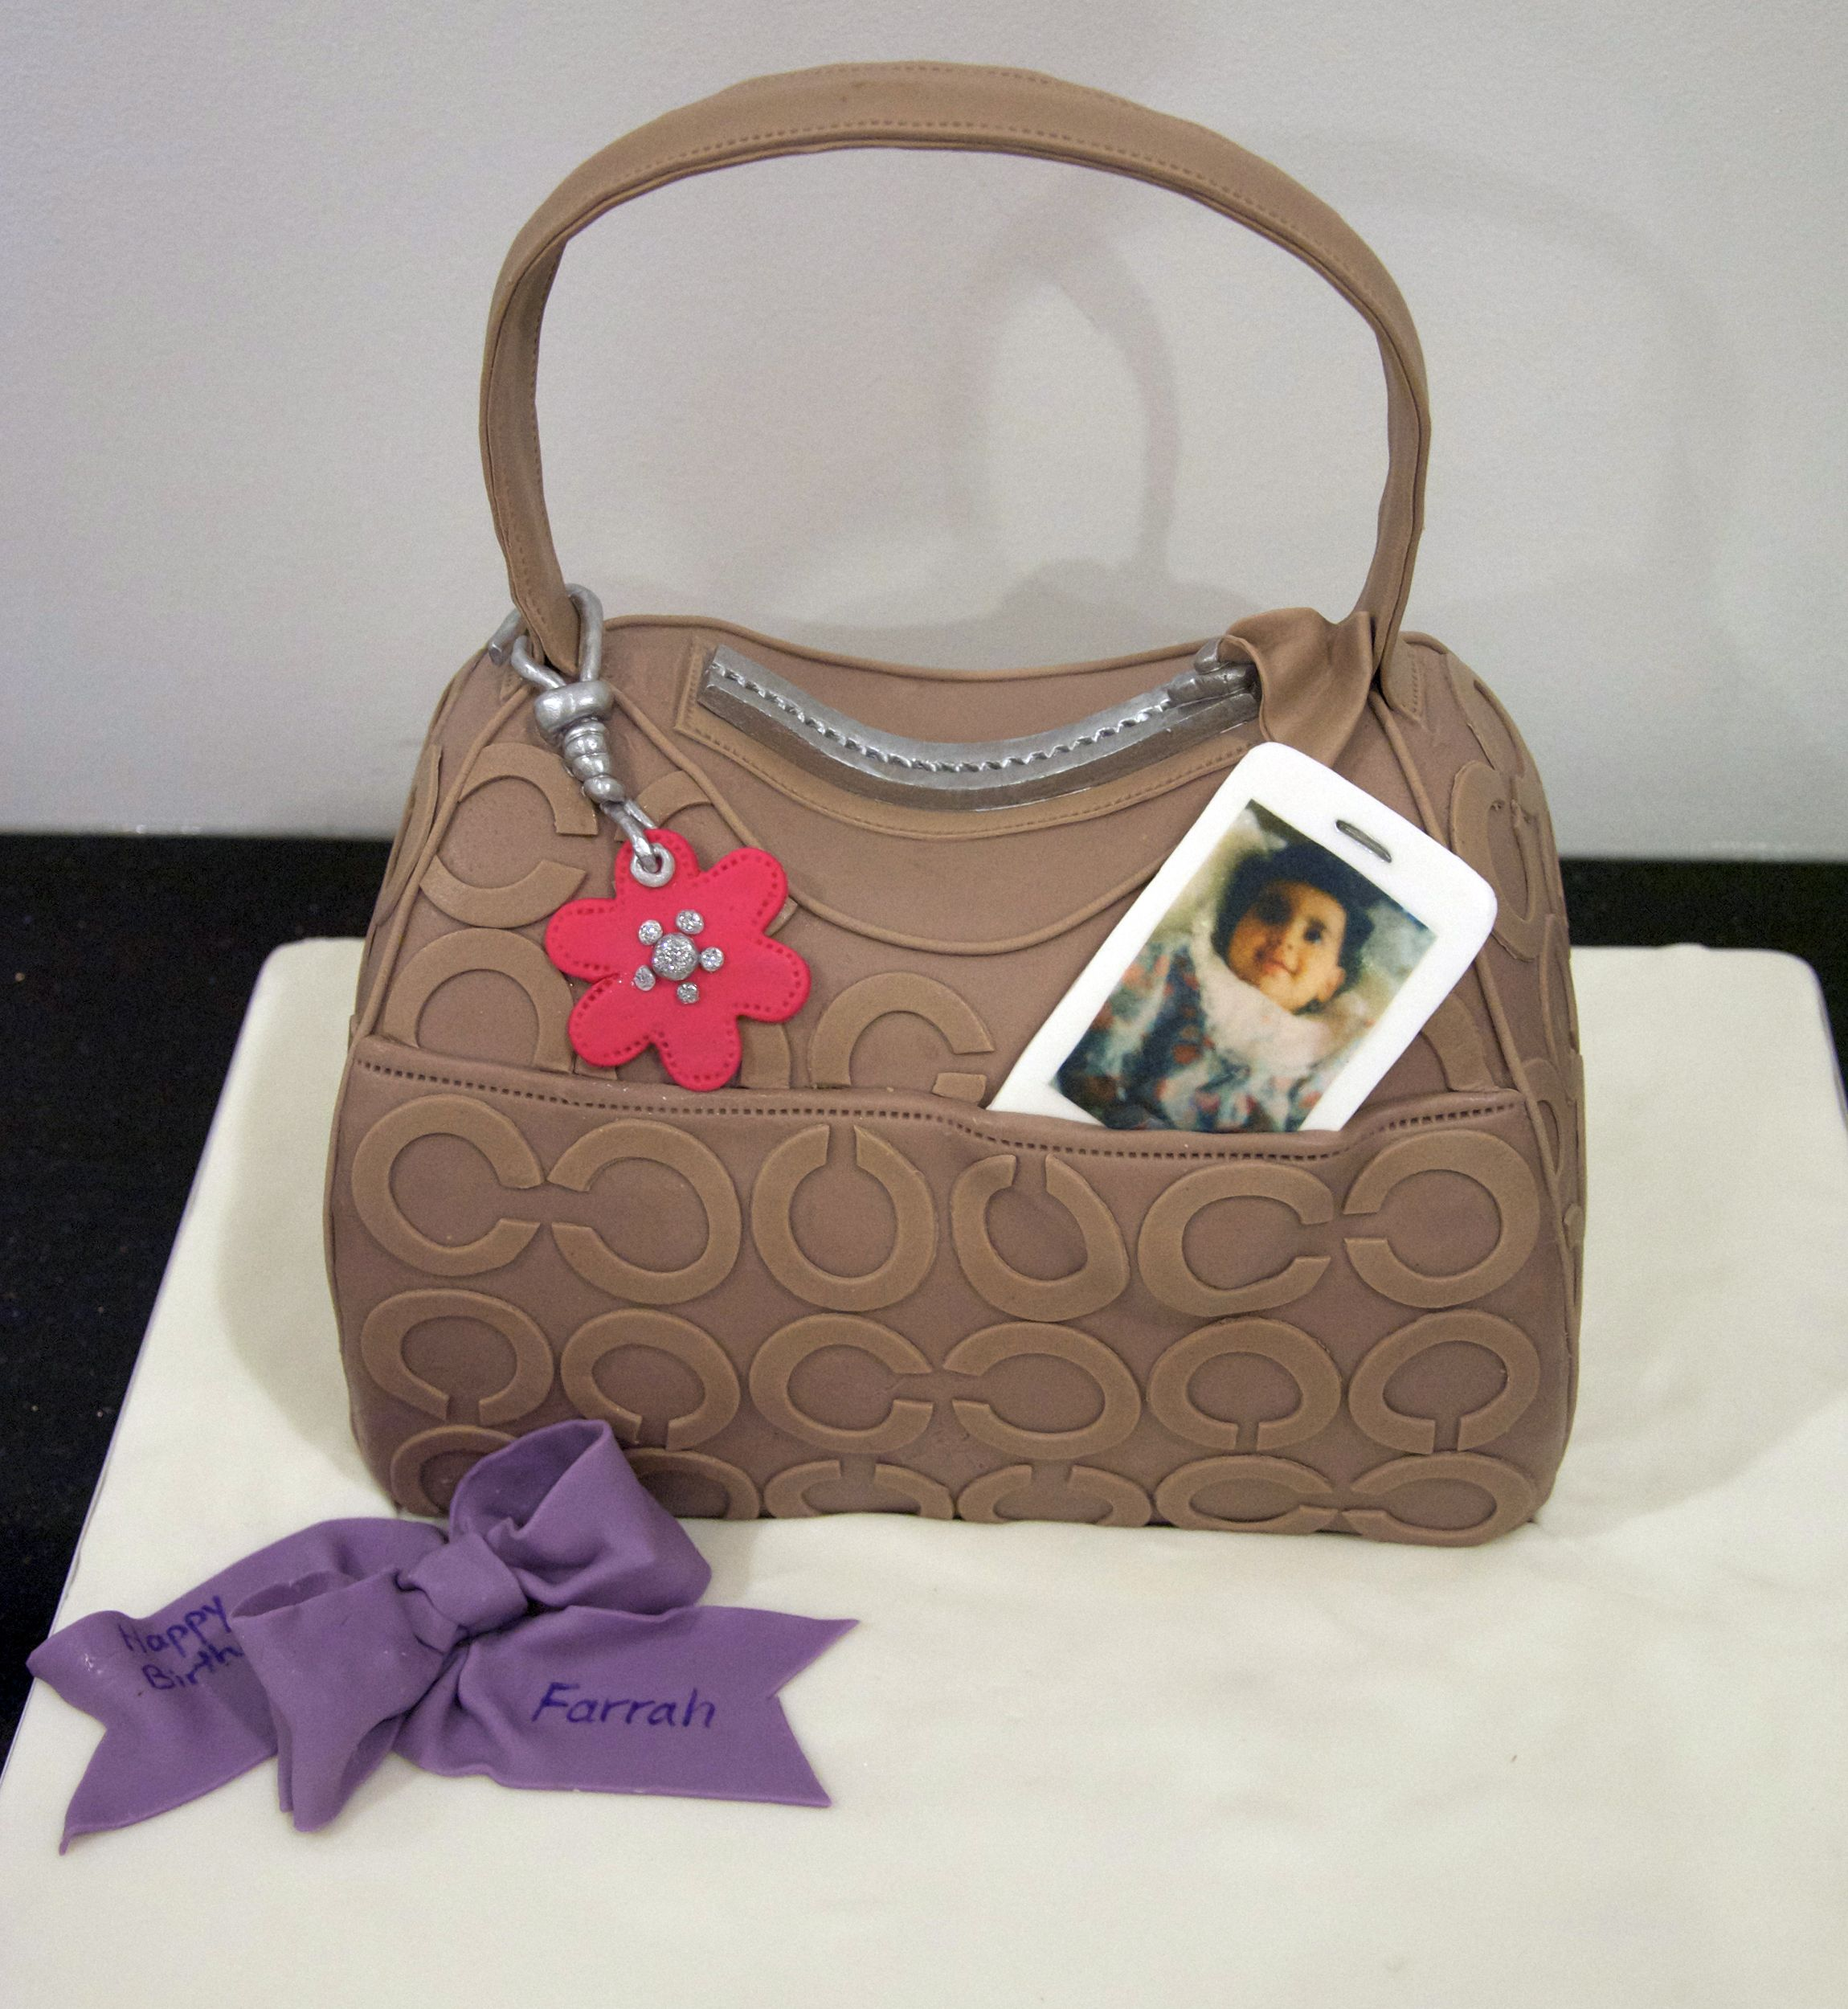 images of pocketbook cakes